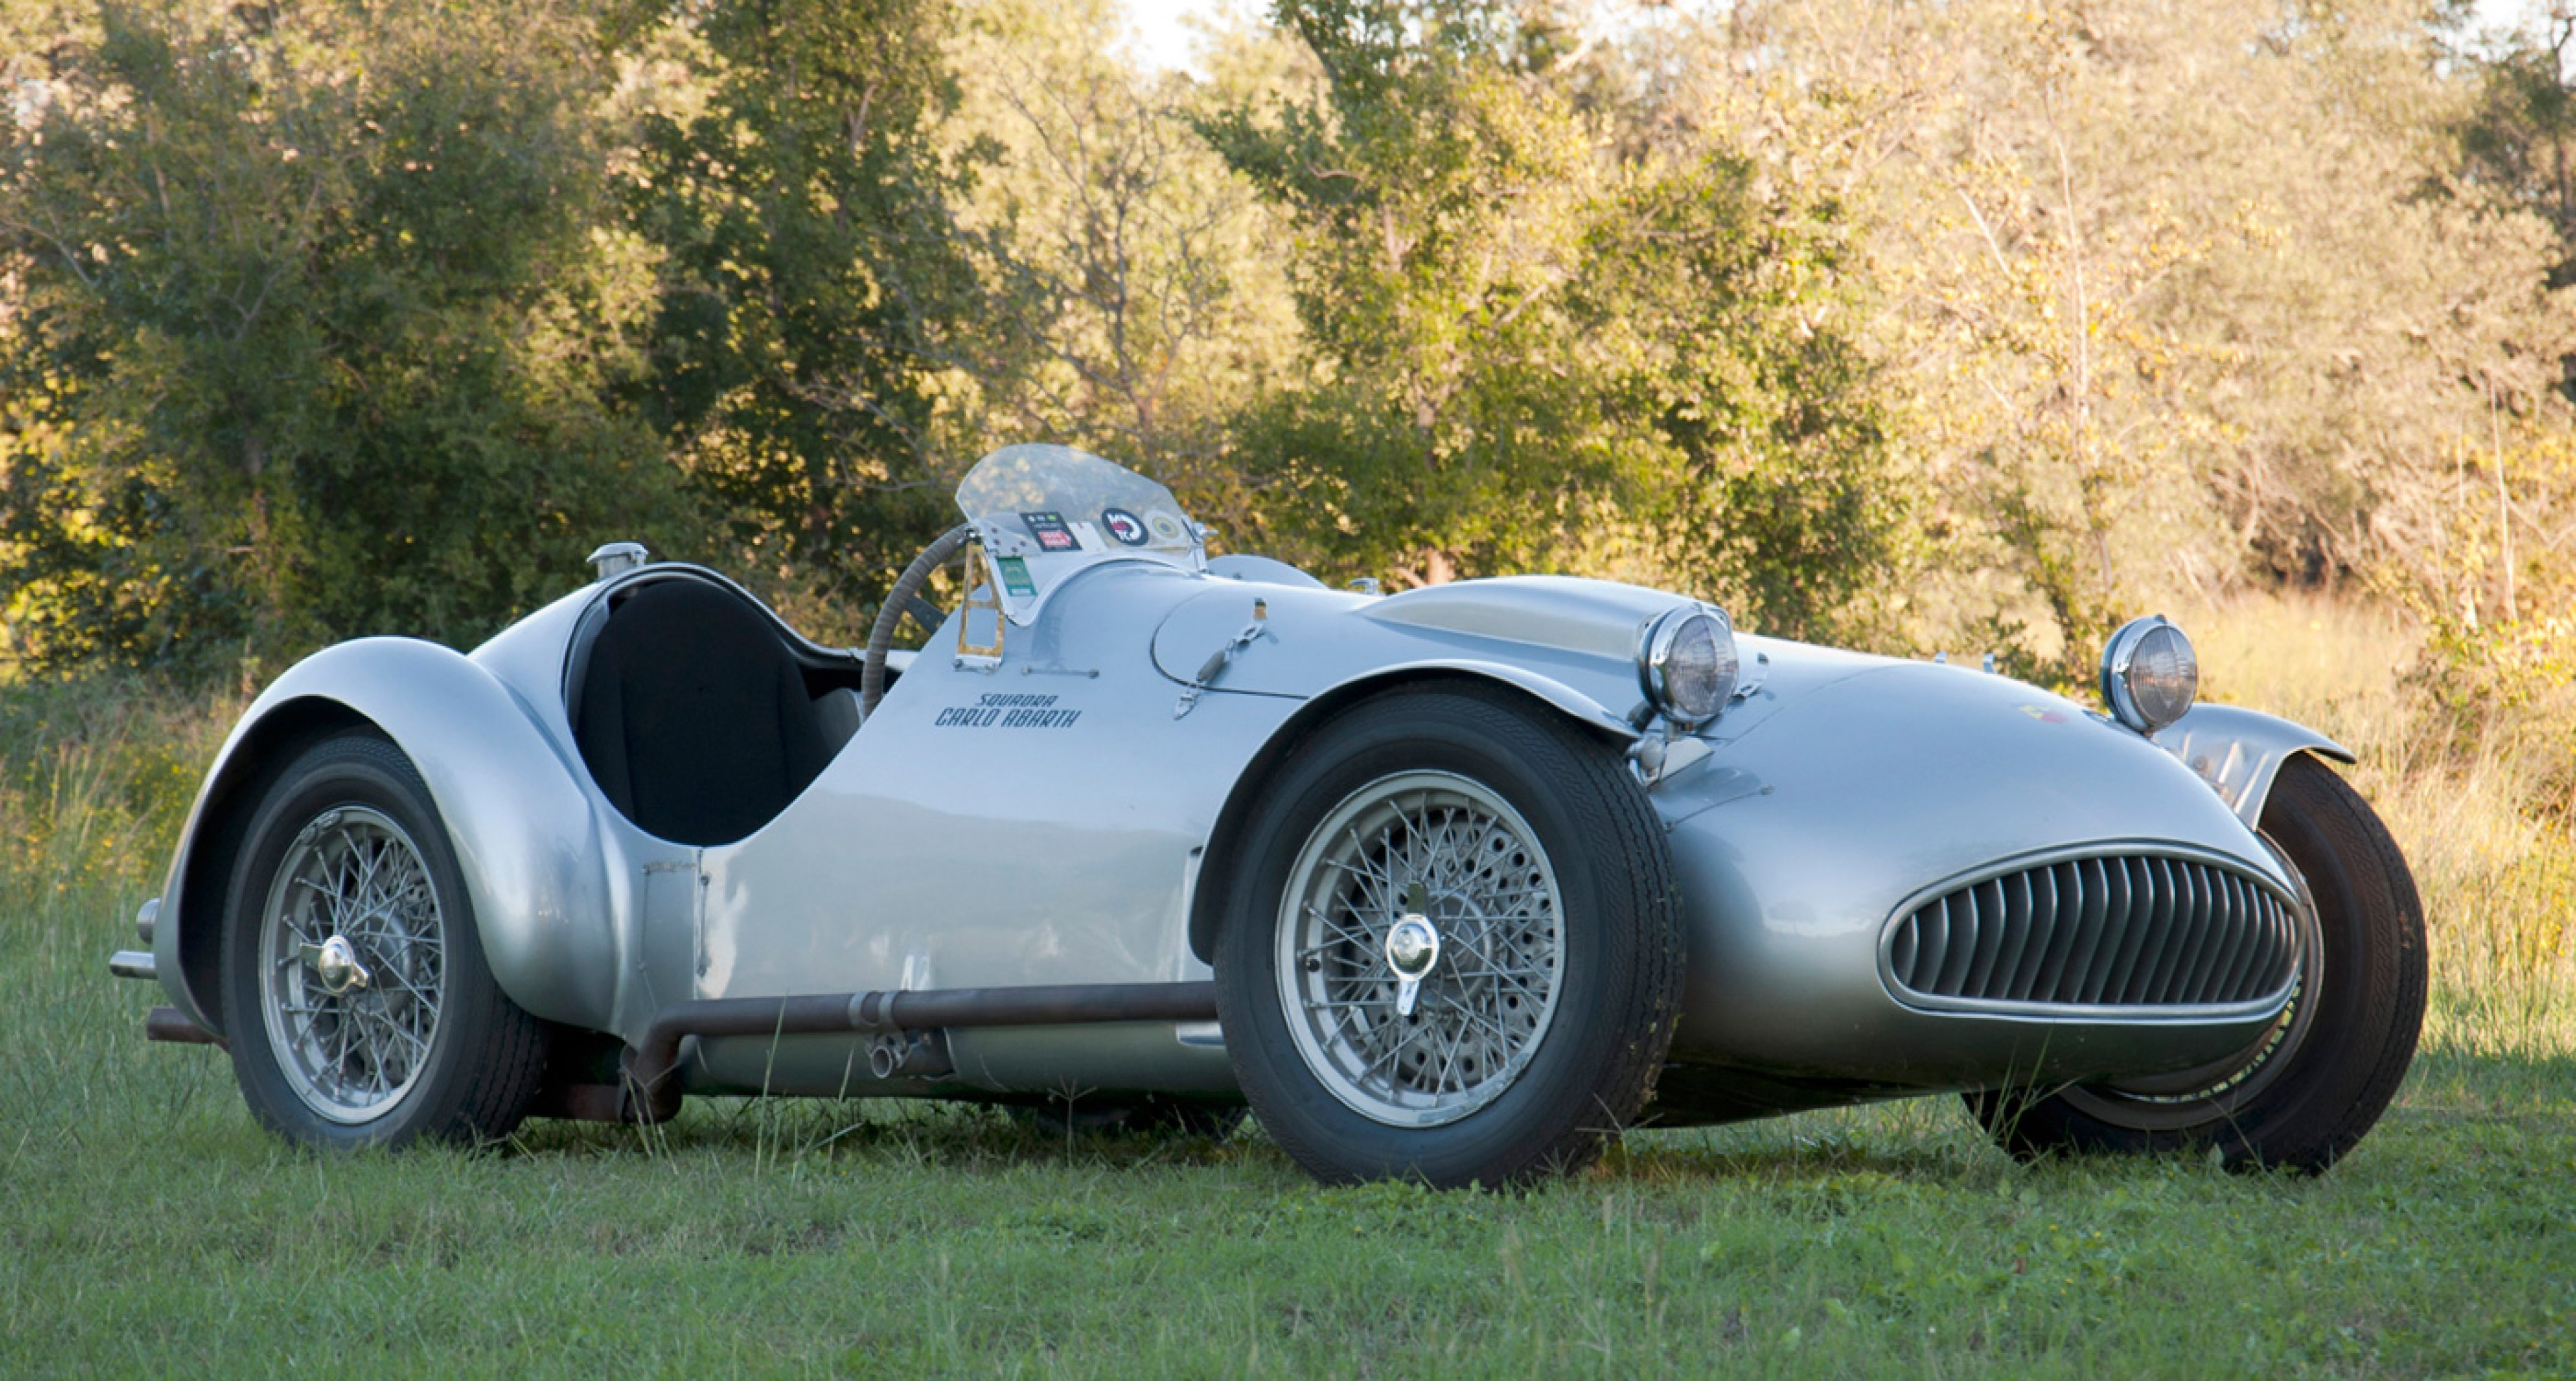 ex-Fangio 1950 Cisitalia Abarth 204 A Spider to be sold at Coys' 'Legende et Passion' auction in Monaco, 9 May 2014